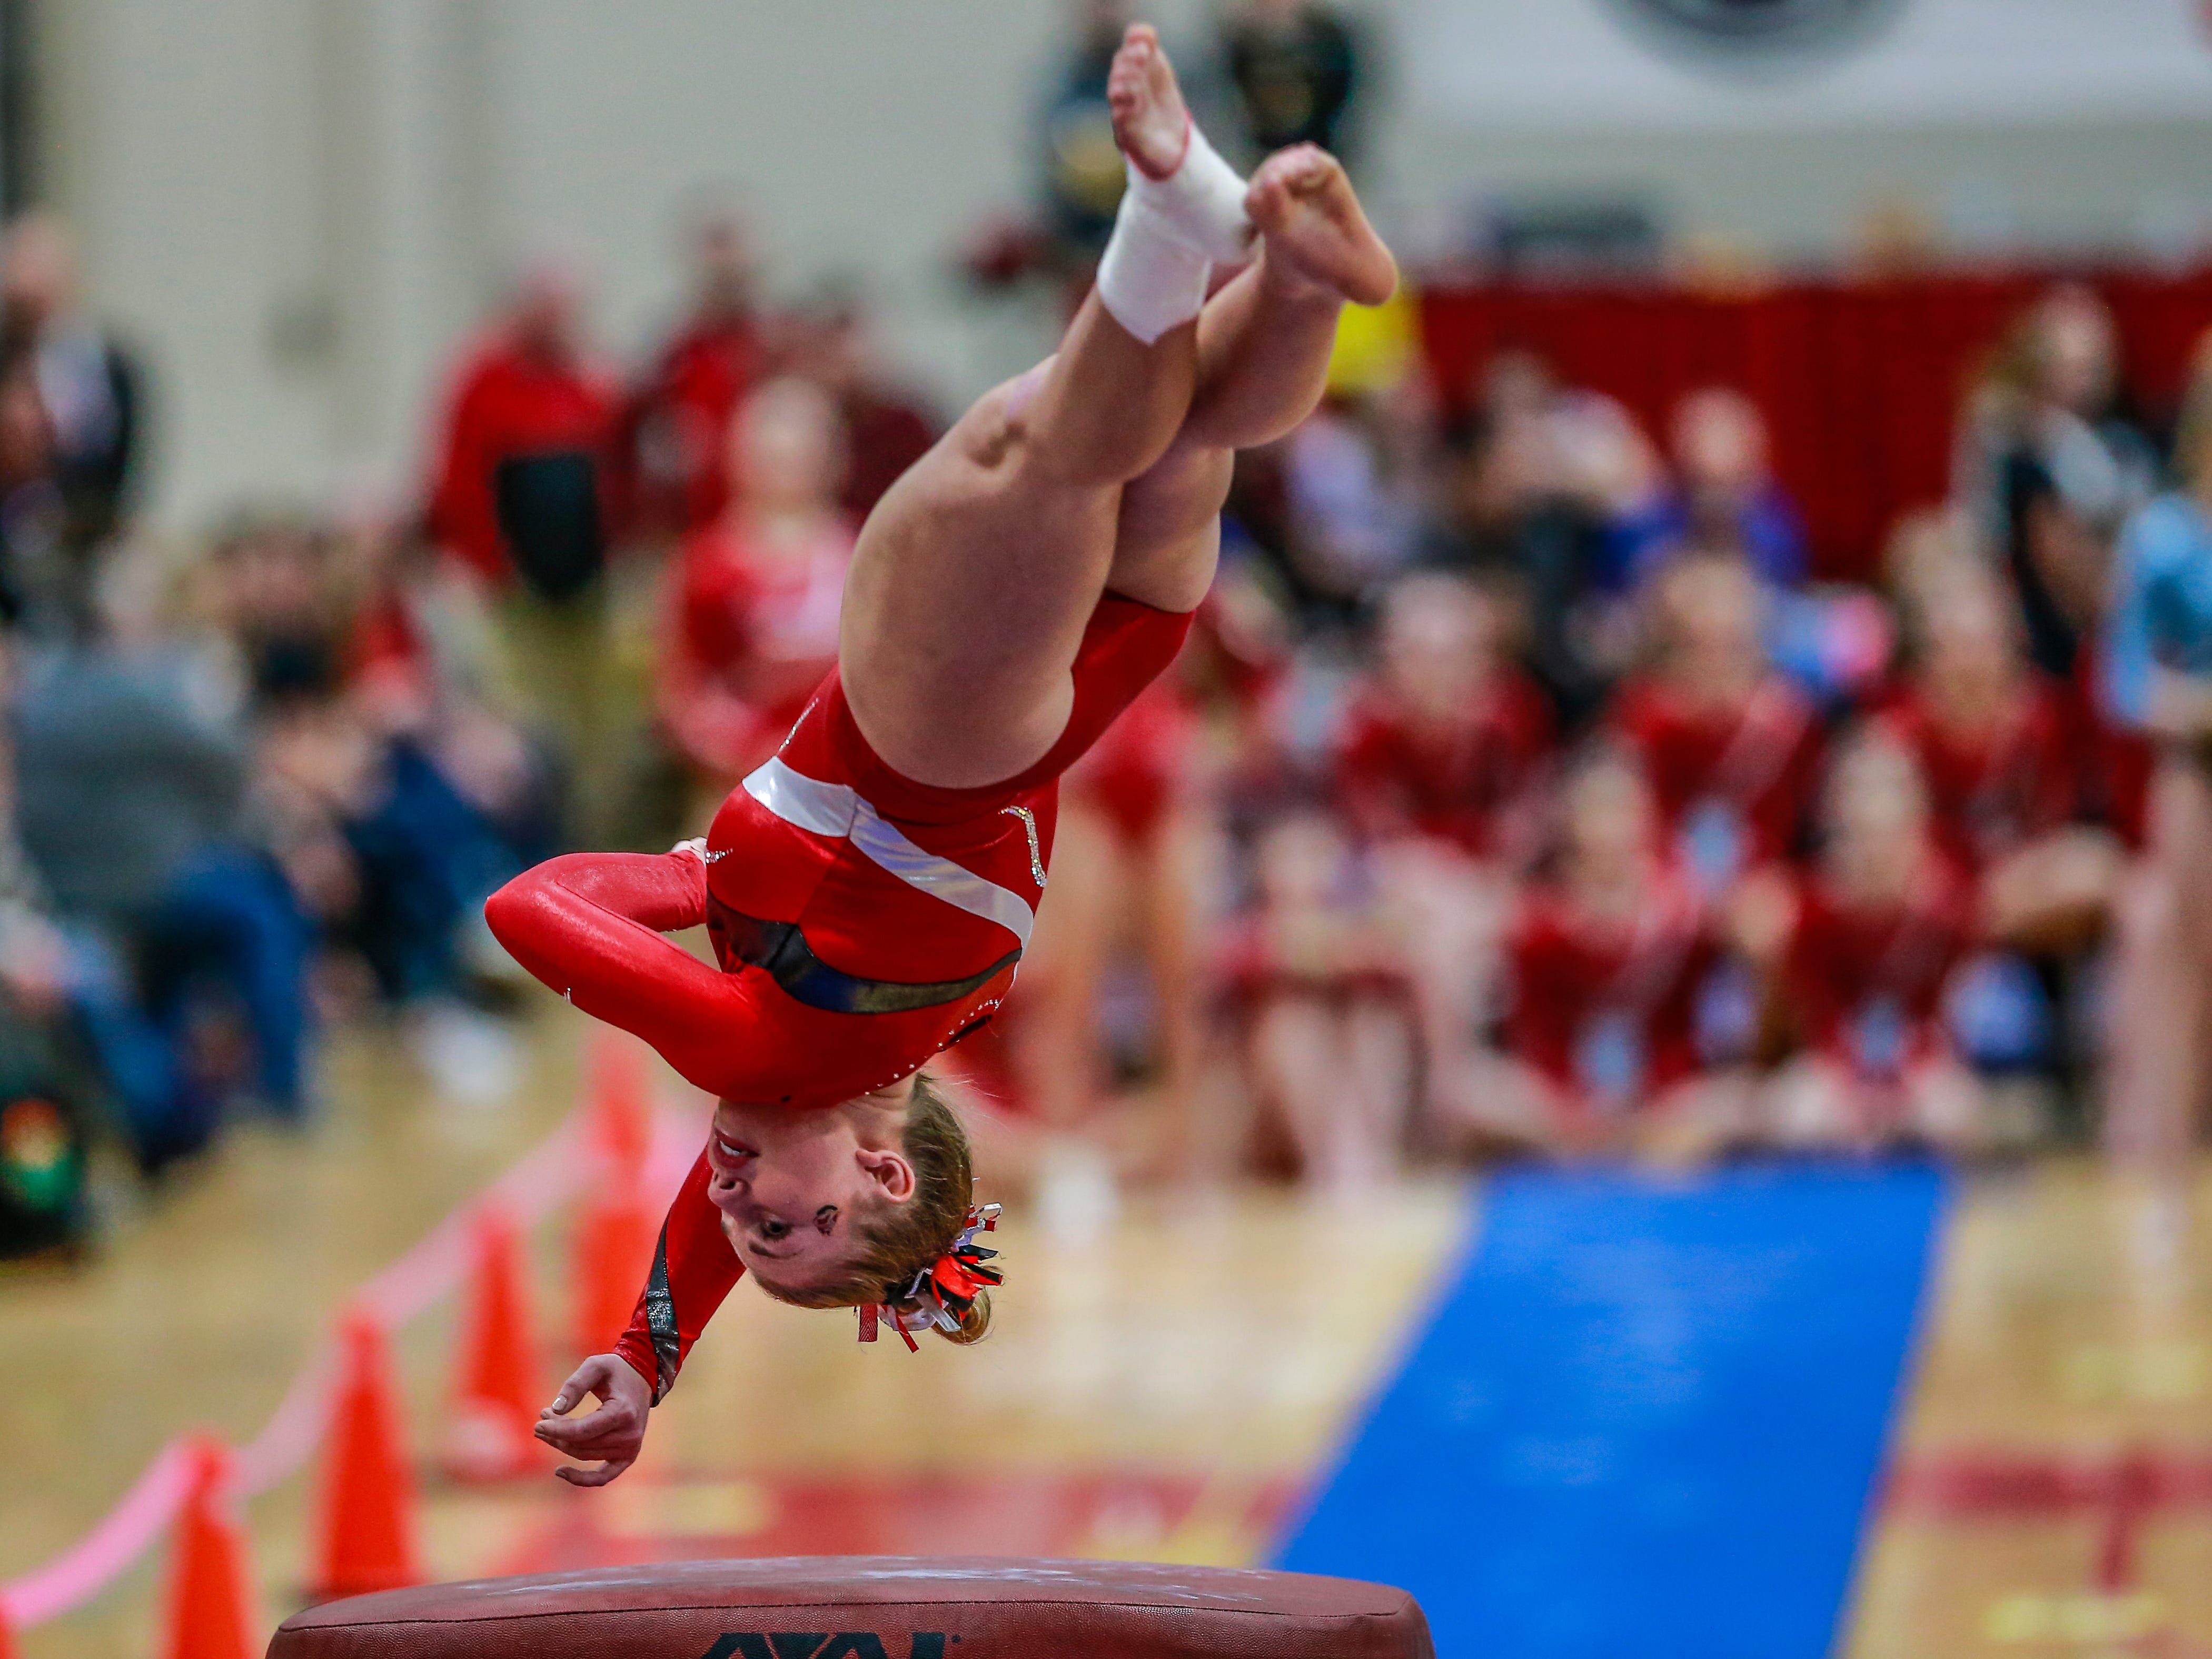 Manitowoc Lincoln's Breana Reinhart competes in the vaulting during WIAA state gymnastics competition Friday, March 1, 2019, at Lincoln High School Field House in Wisconsin Rapids, Wis. T'xer Zhon Kha/USA TODAY NETWORK-Wisconsin